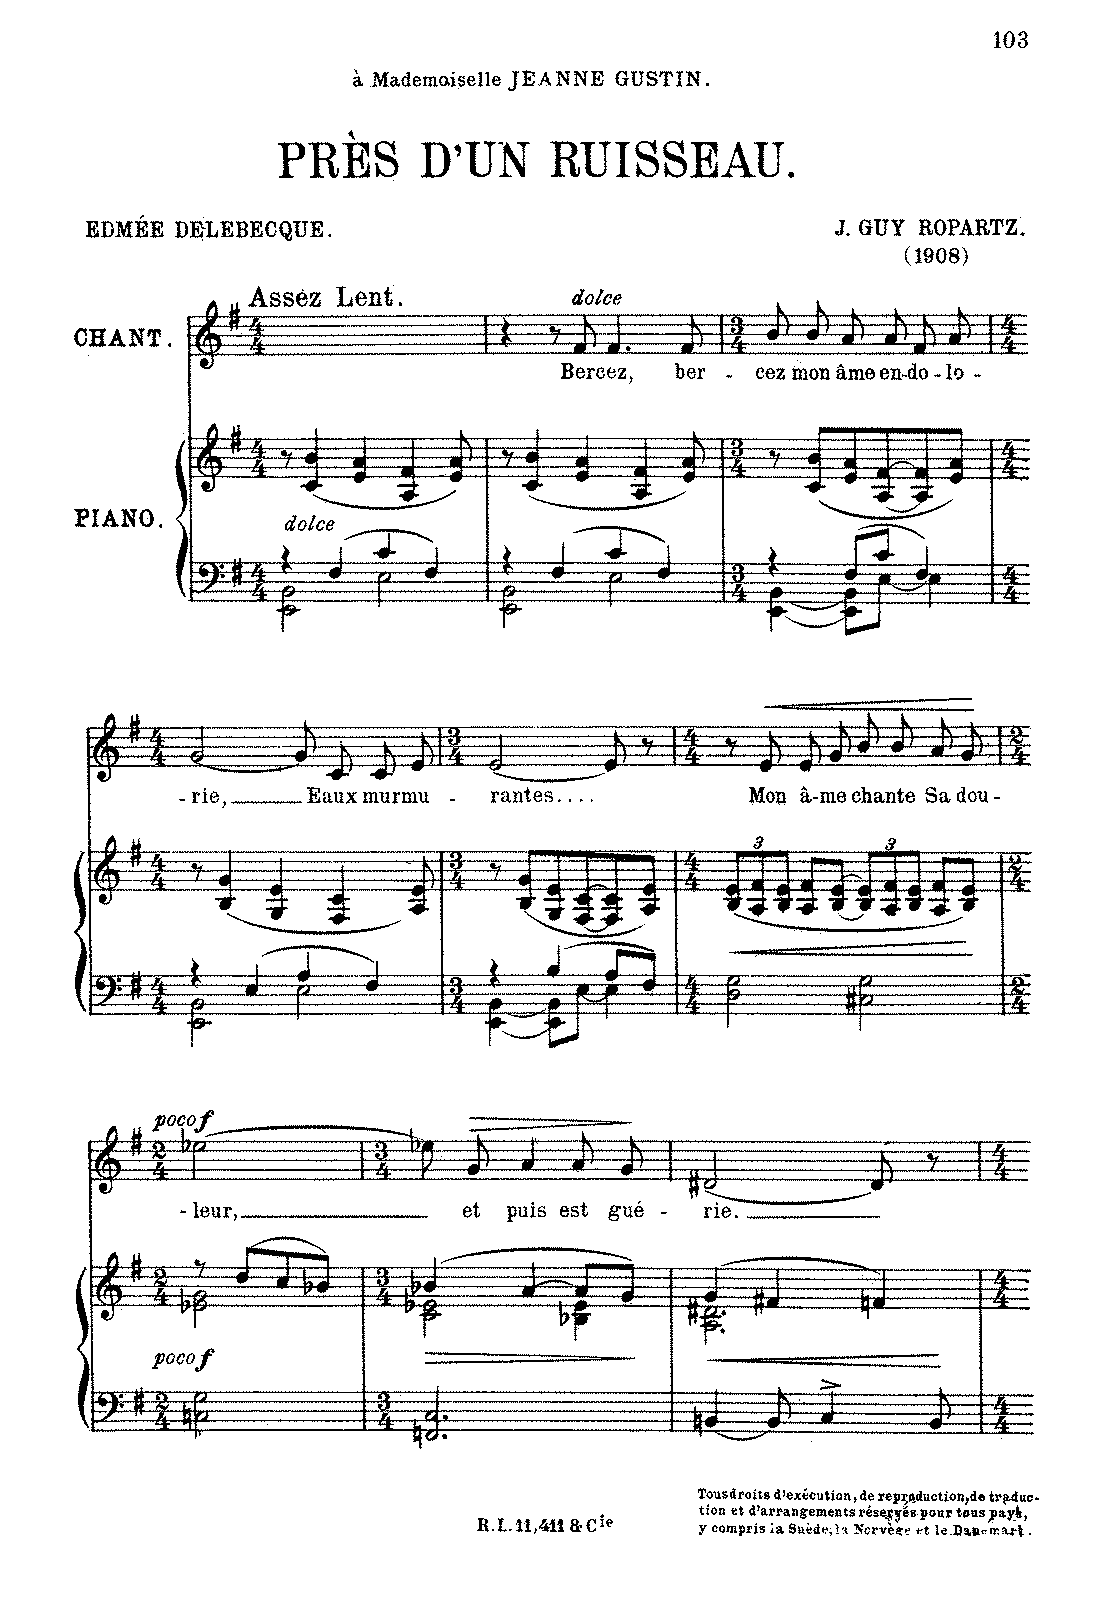 PMLP132128-Ropartz - Près d'un ruisseau (voice and piano).pdf